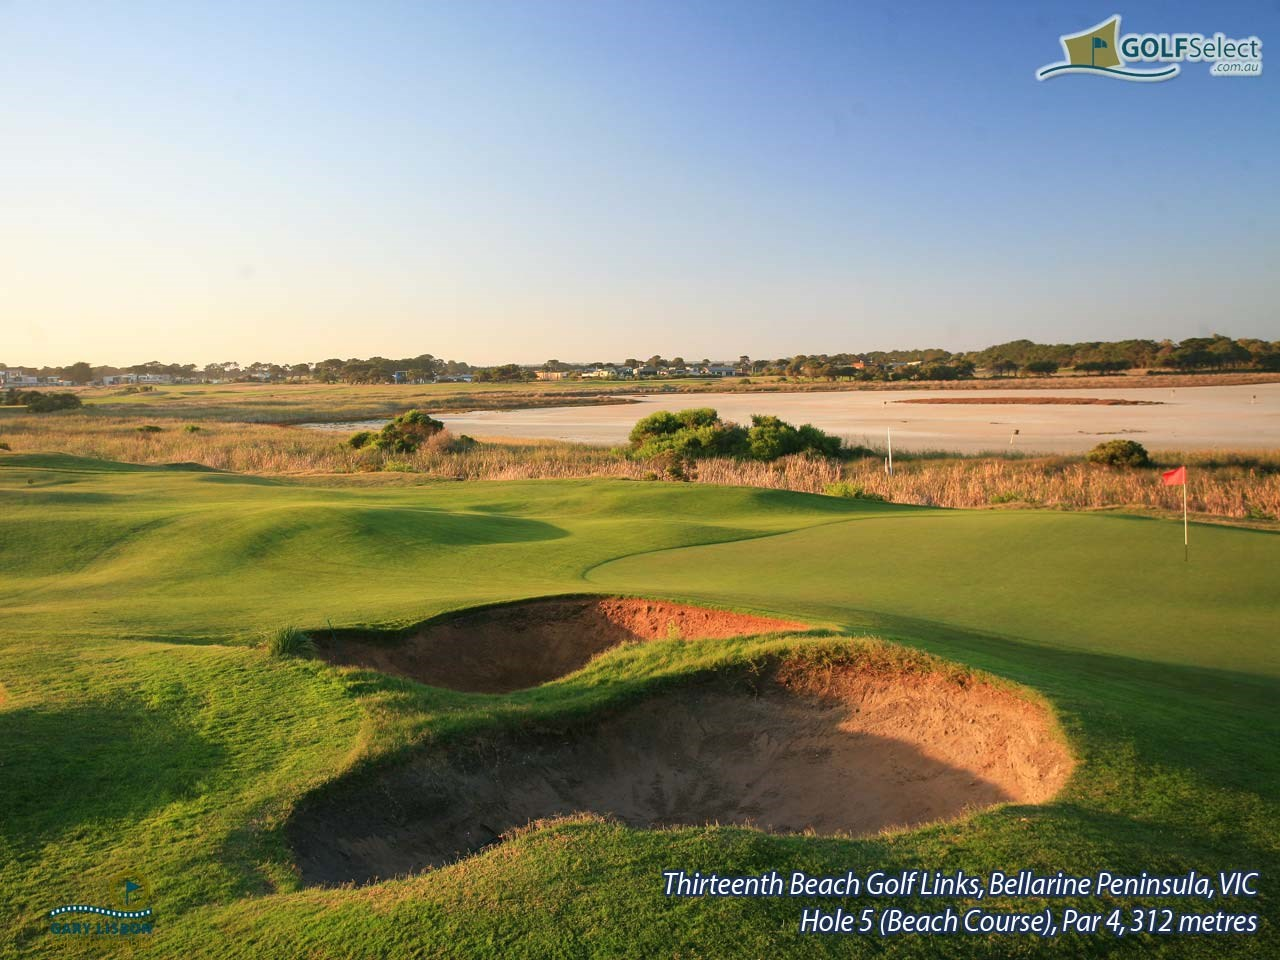 Thirteenth Beach Golf Links (Beach Course) Hole 5, Par 4, 321 metres